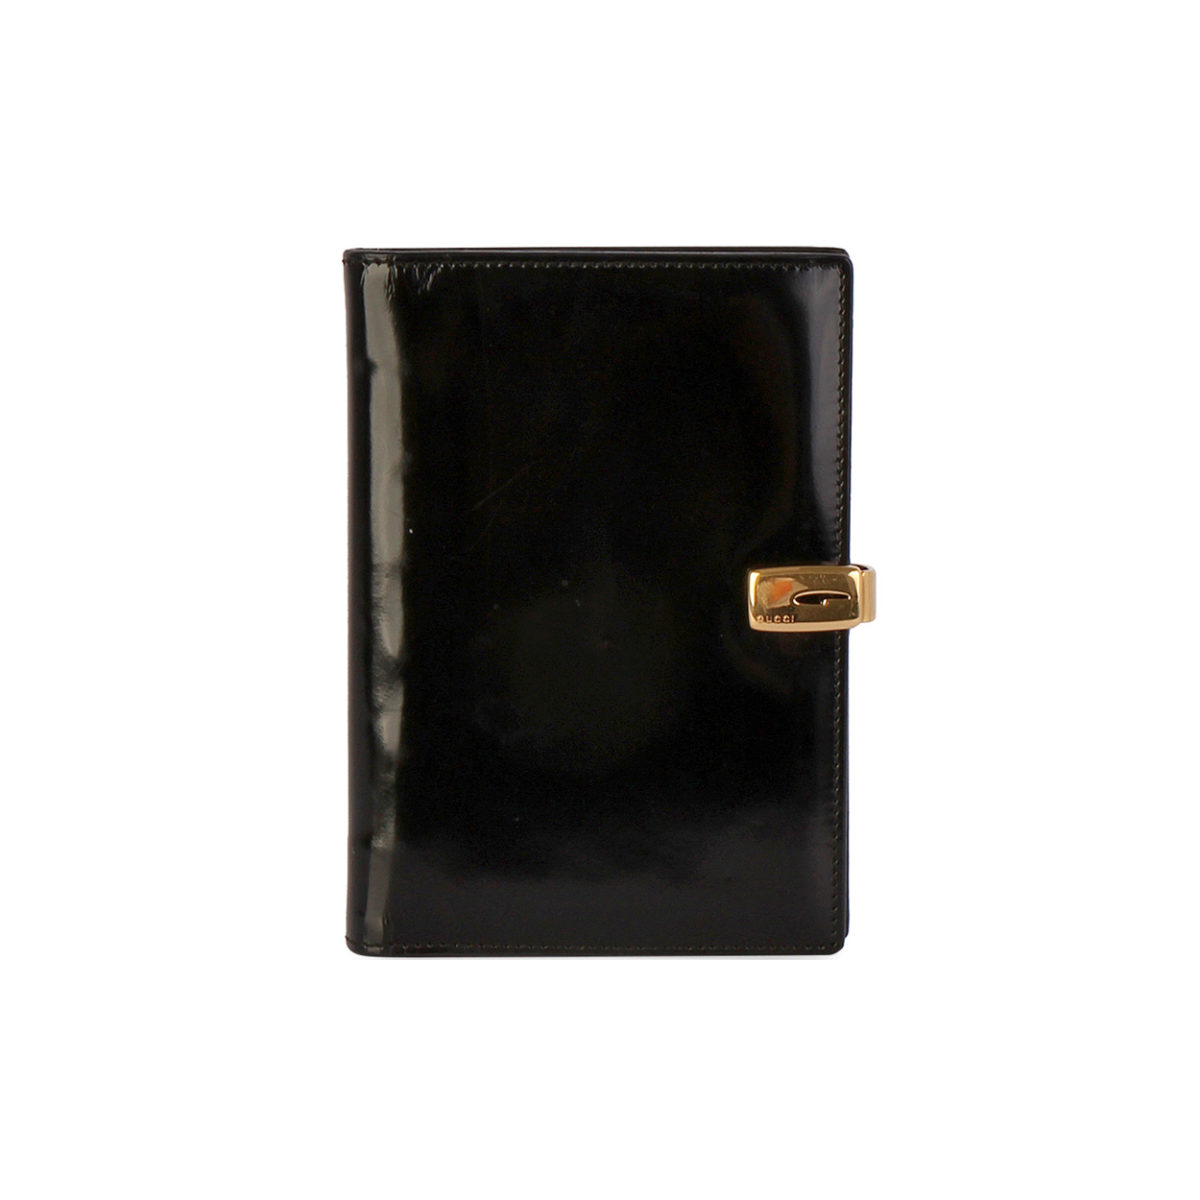 eaac337b278 GUCCI Patent Leather Agenda Cover Black | Luxity